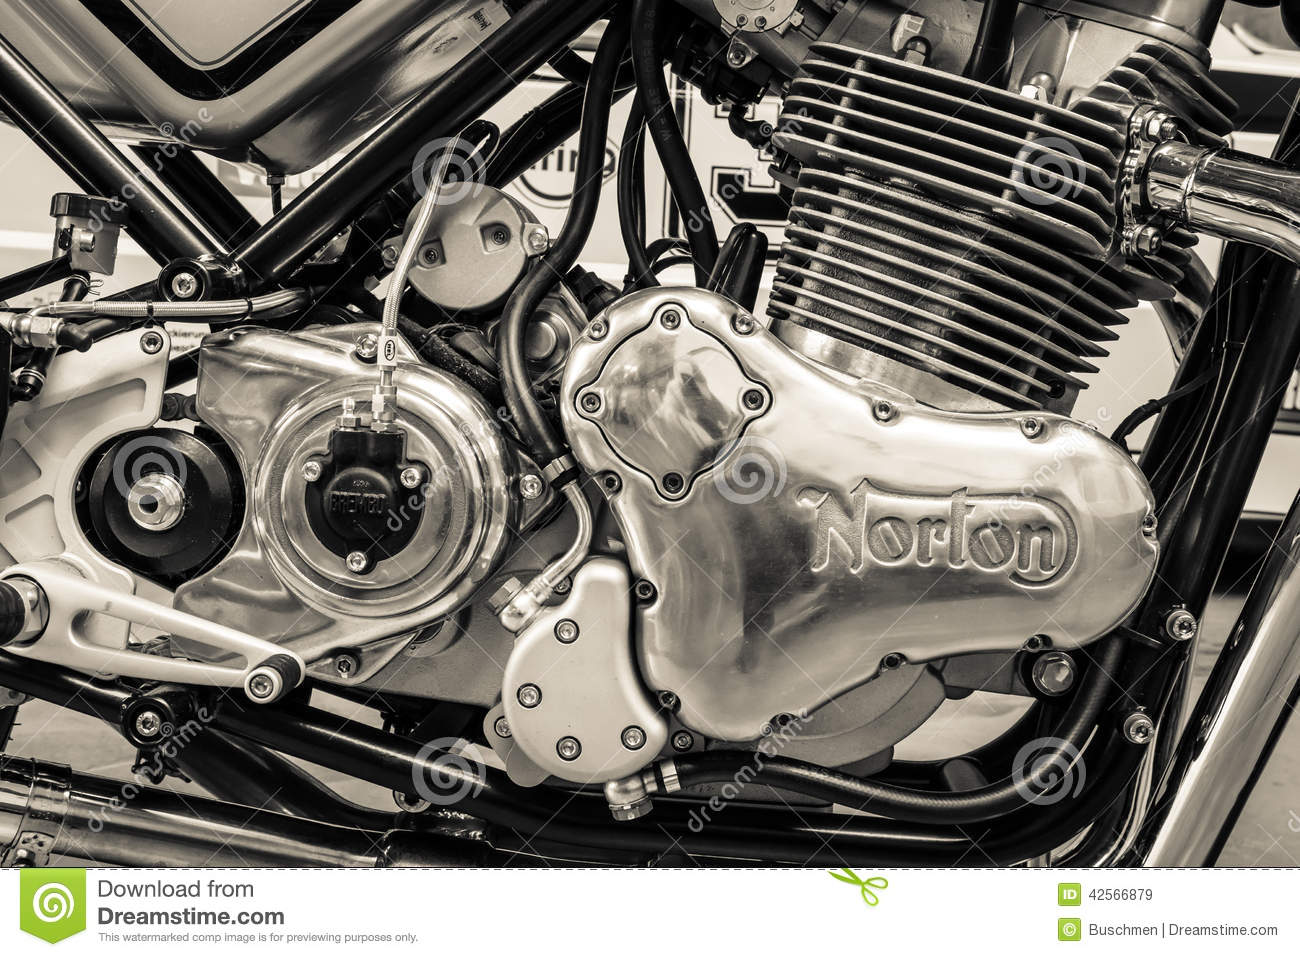 engine of a sports motorcycle norton commando 961 cafe. Black Bedroom Furniture Sets. Home Design Ideas